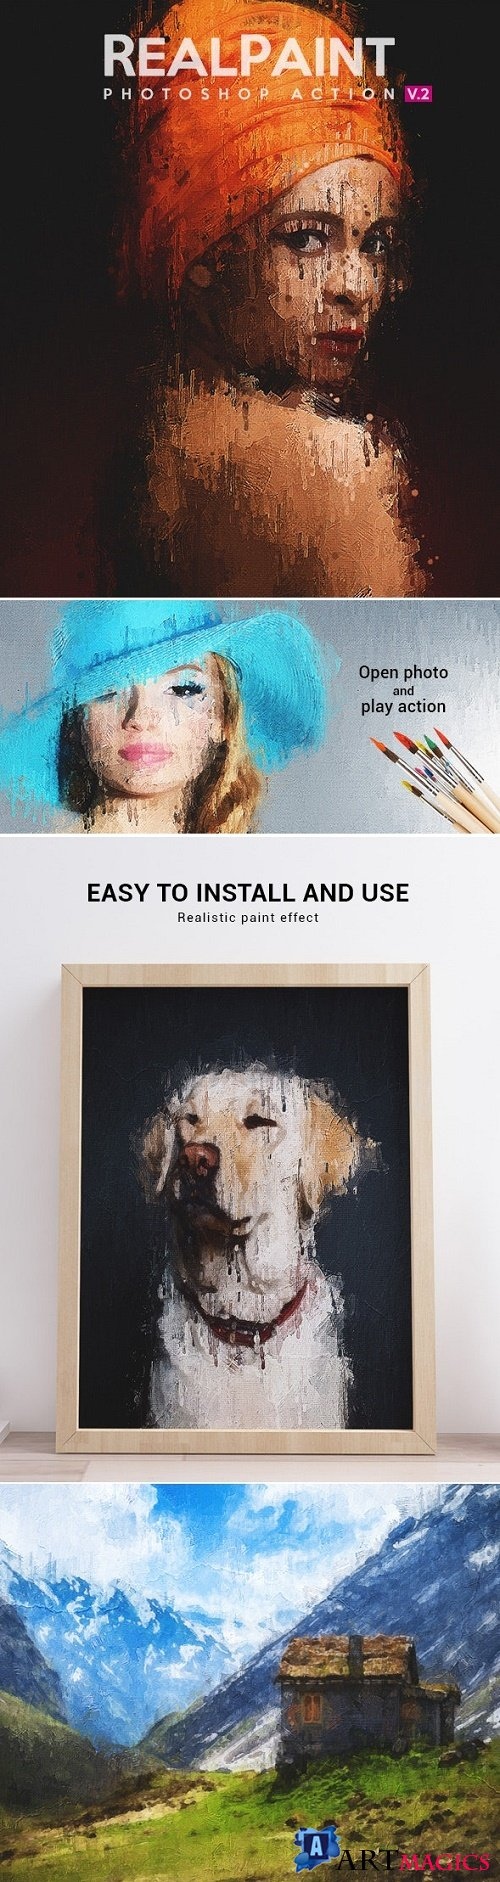 Real Paint V.2 - Photoshop Action 23951125